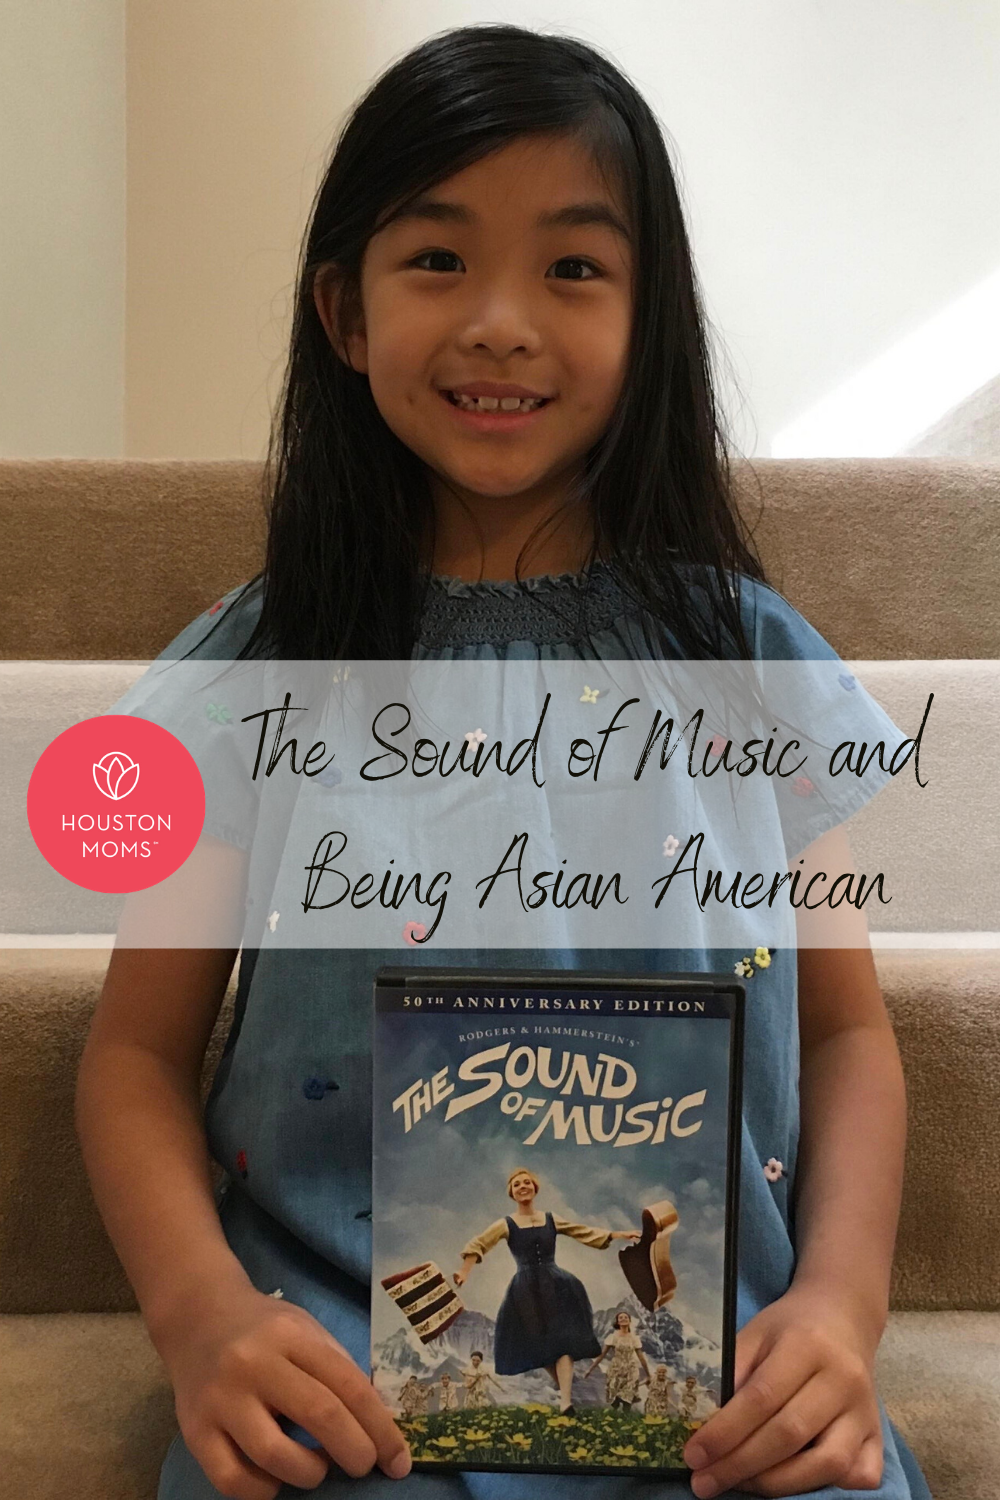 """Houston Moms """"The Sound of Music and Being Asian American"""" #houstonmoms #houstonmomsblog #momsaroundhouston"""